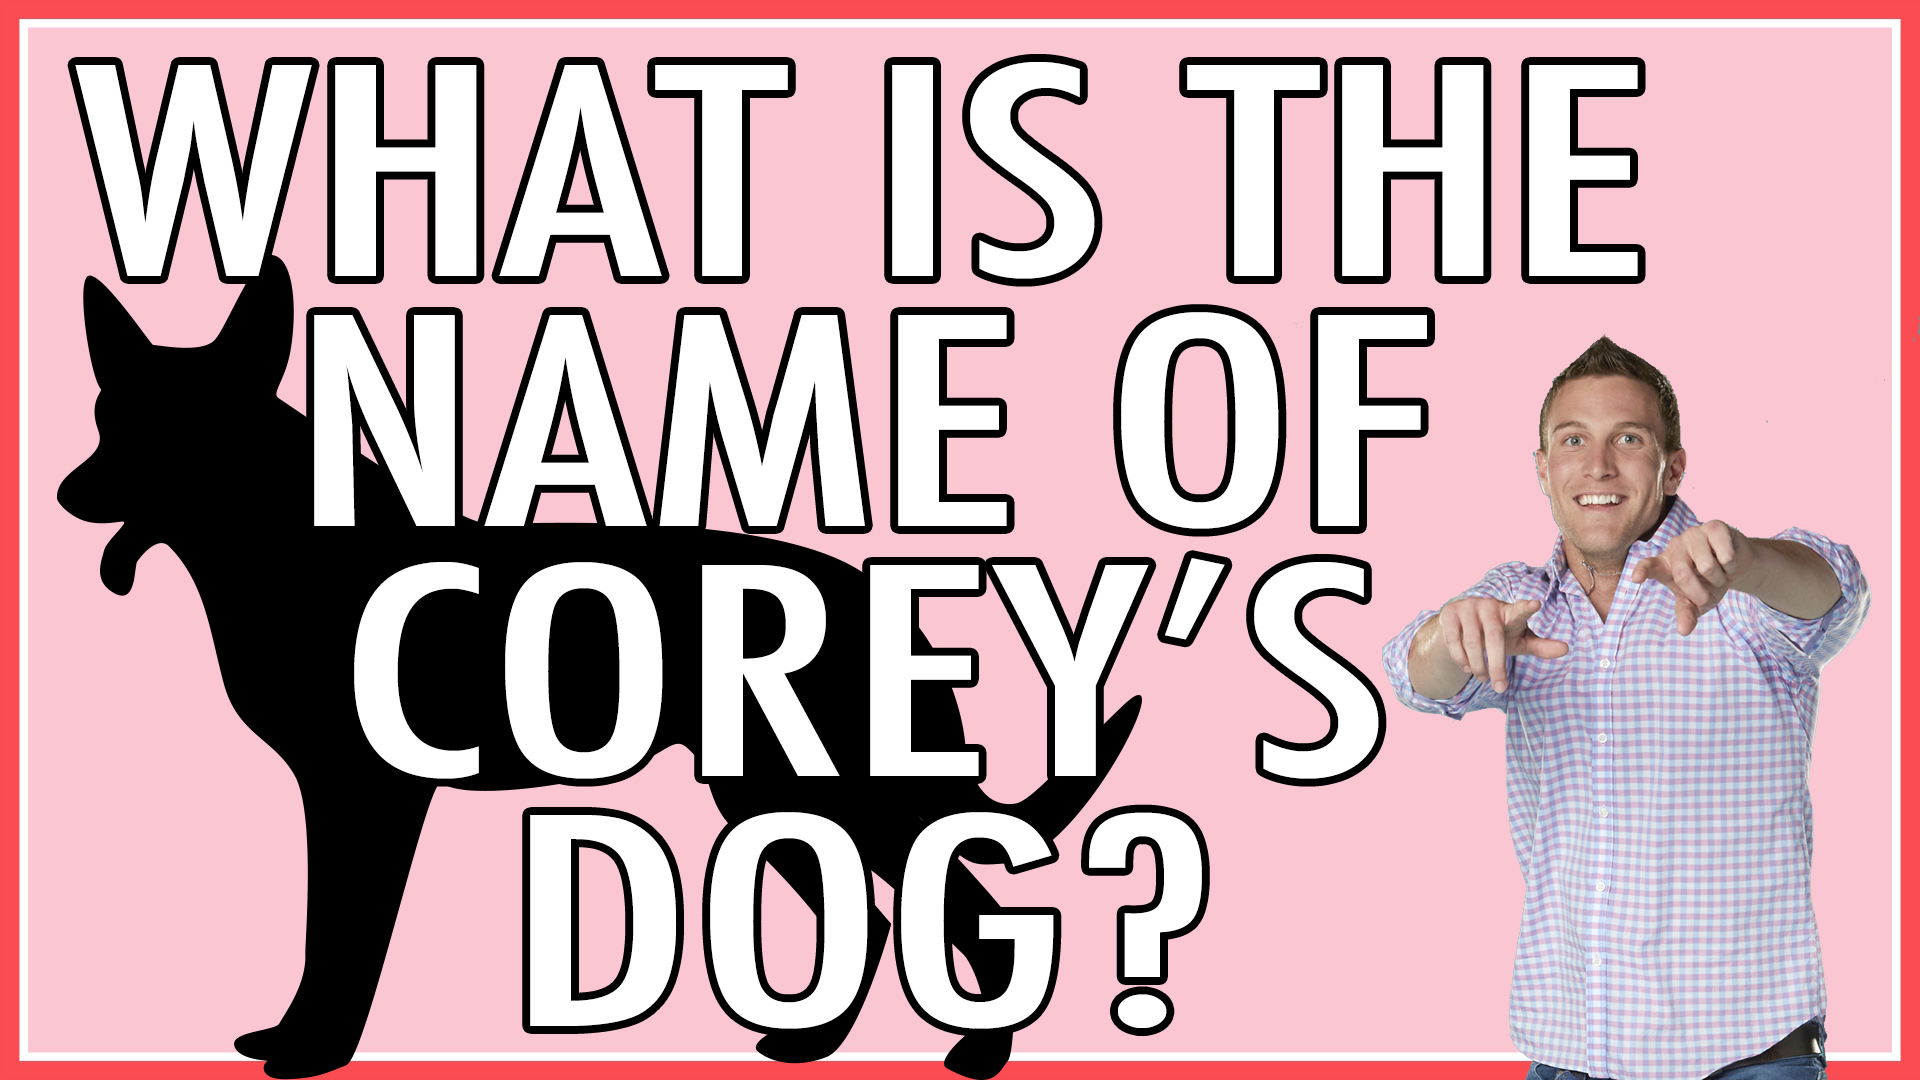 Question: What is the name of Corey's dog?